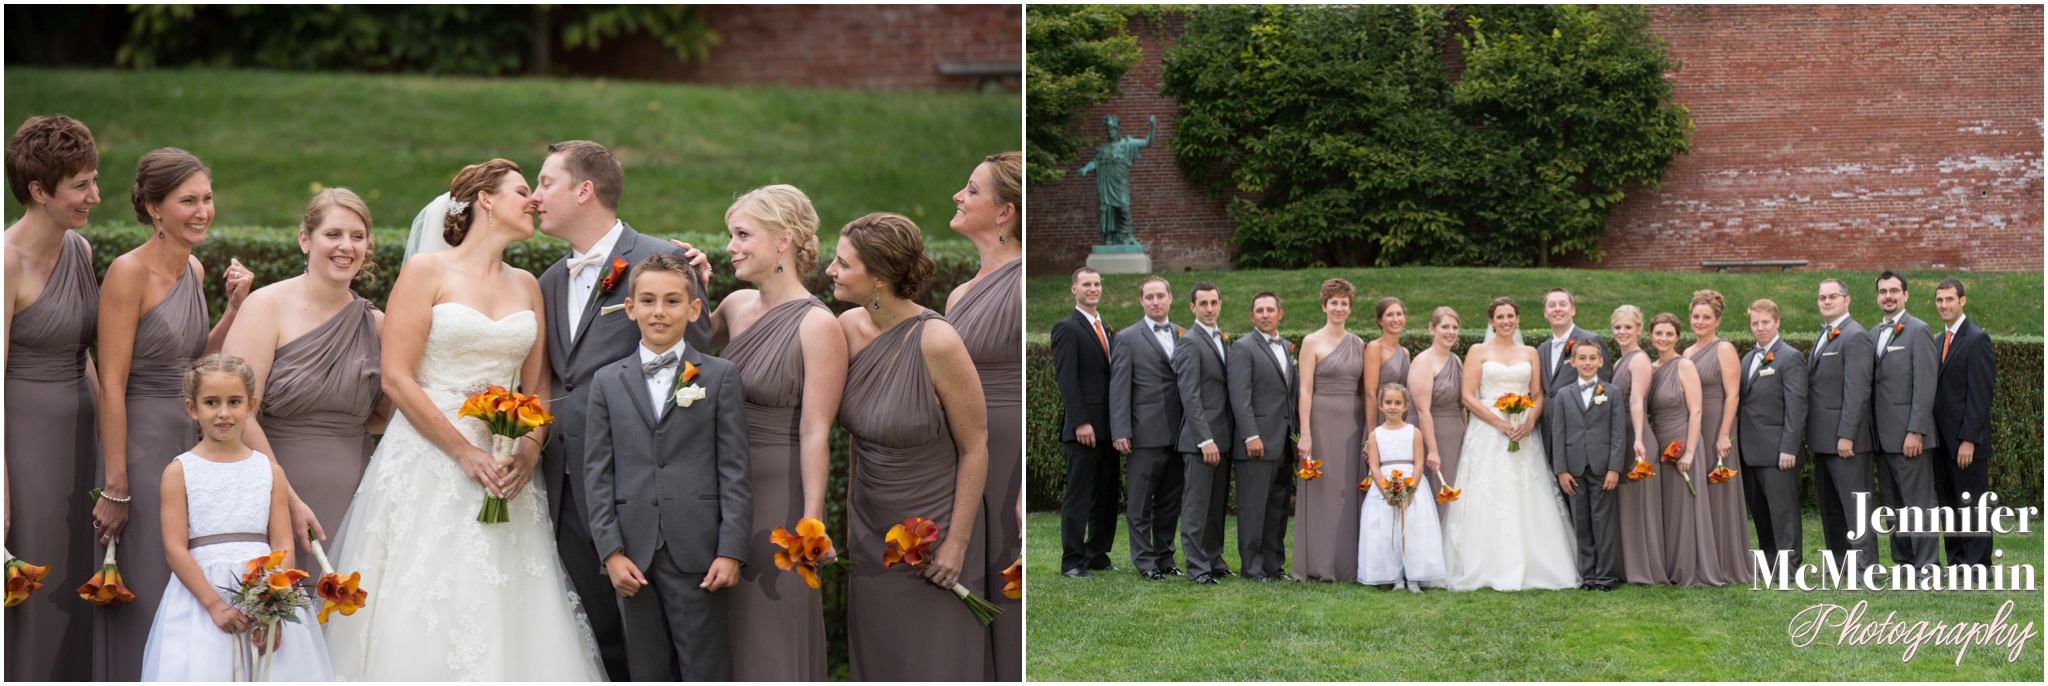 062-HenningMiller_02319-0469_JenniferMcMenaminPhotography_Evergreen-Museum-And-Carriage-House_Evergreen-wedding_Baltimore-wedding-photographer_Baltimore-wedding-photography